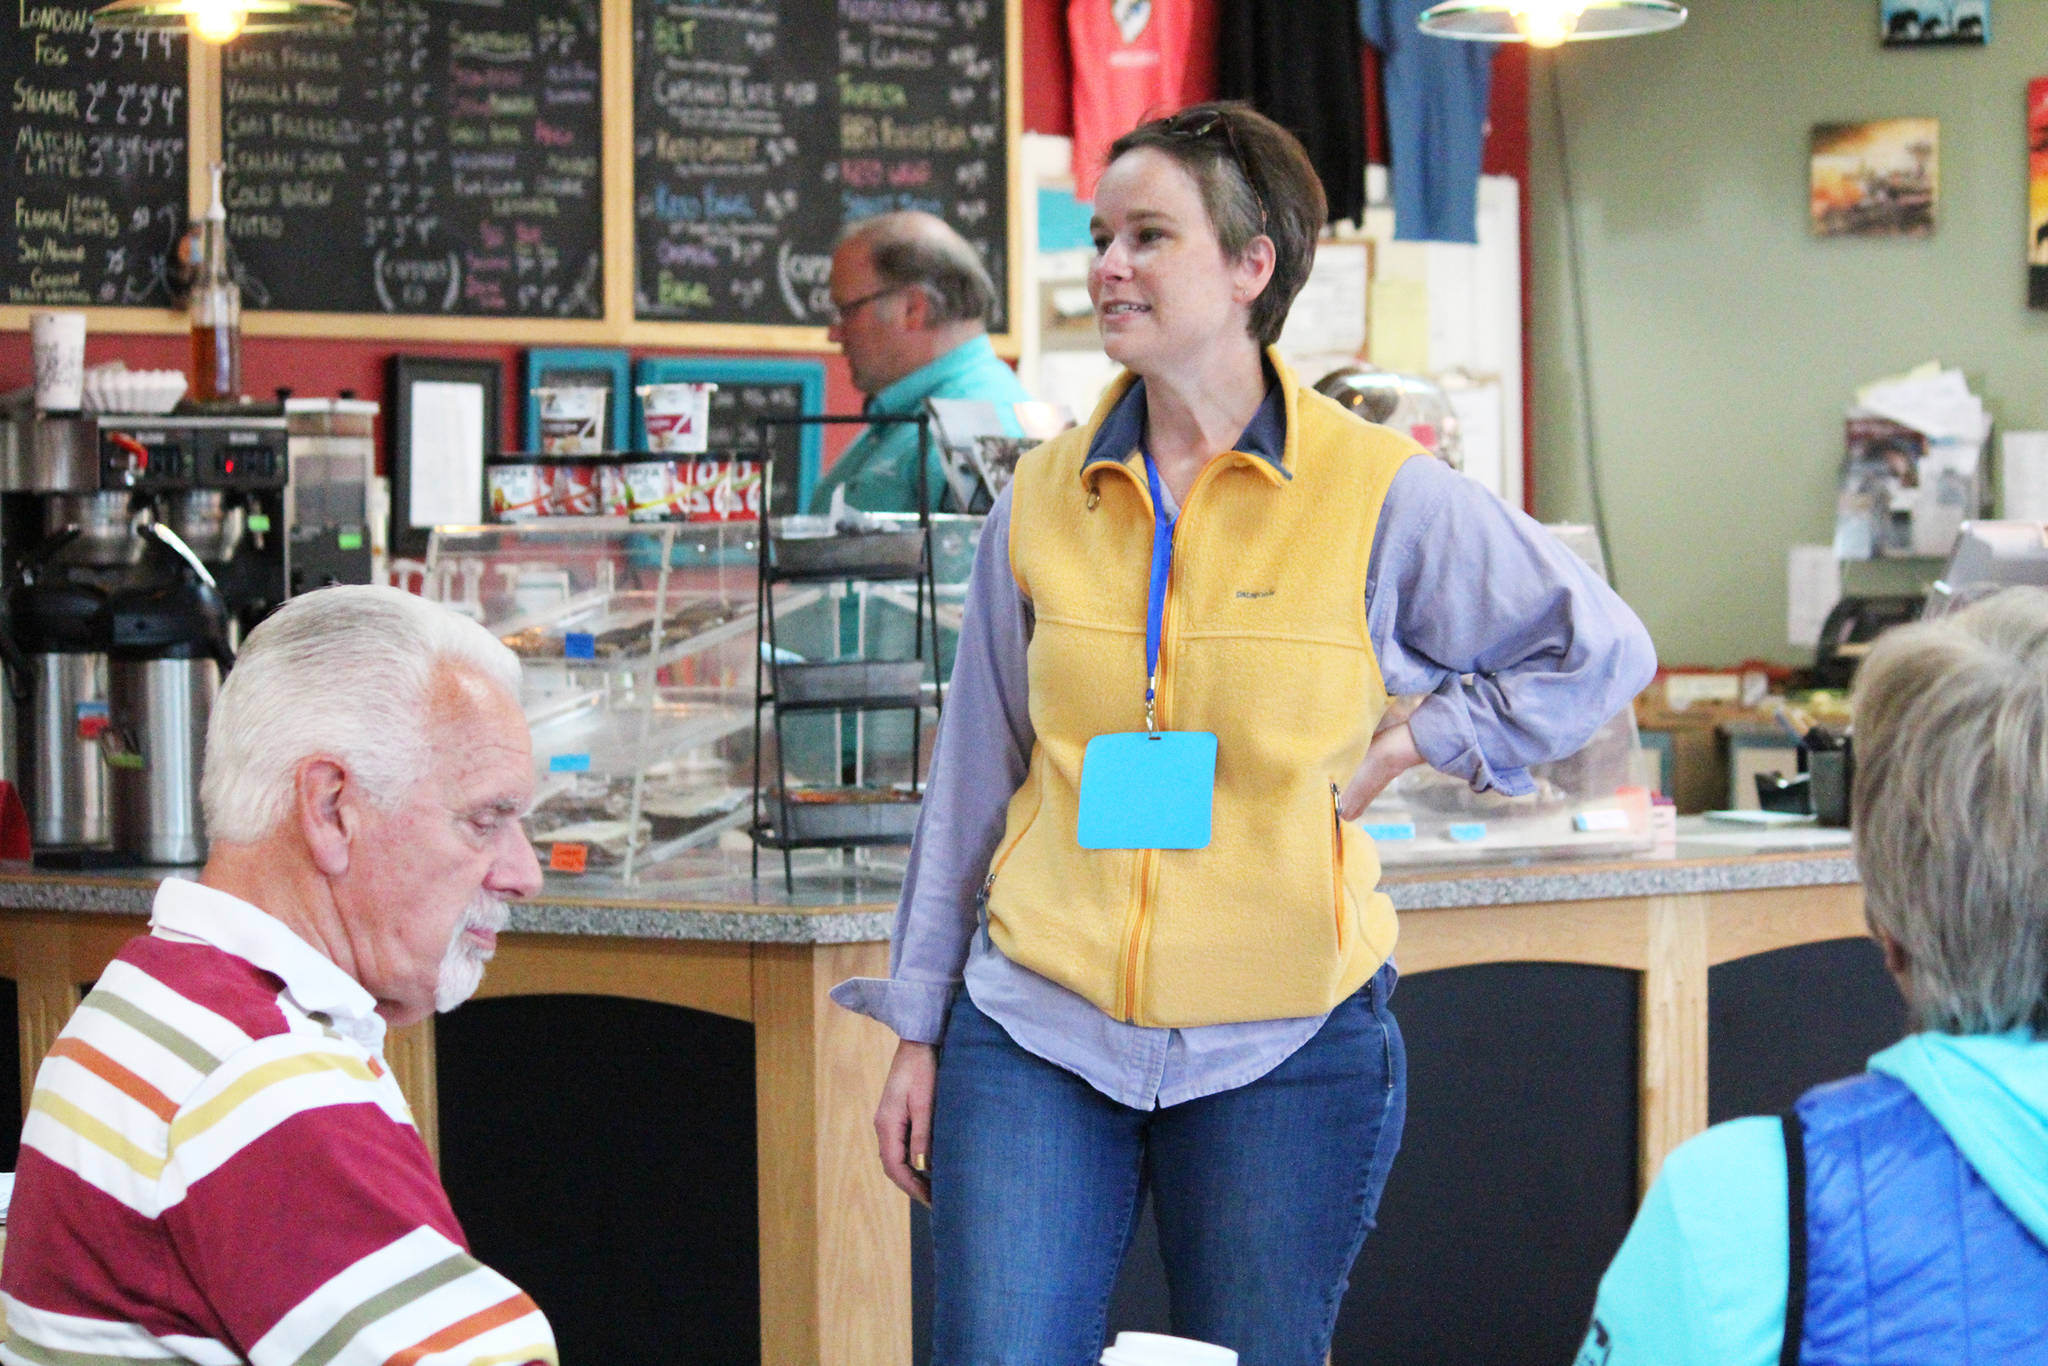 Rep. Sarah Vance (R-Homer) addresses a crowd of people during a legislative update meeting Thursday, Aug. 29, 2019 at Captain's Coffee in Homer, Alaska. (Photo by Megan Pacer/Homer News)